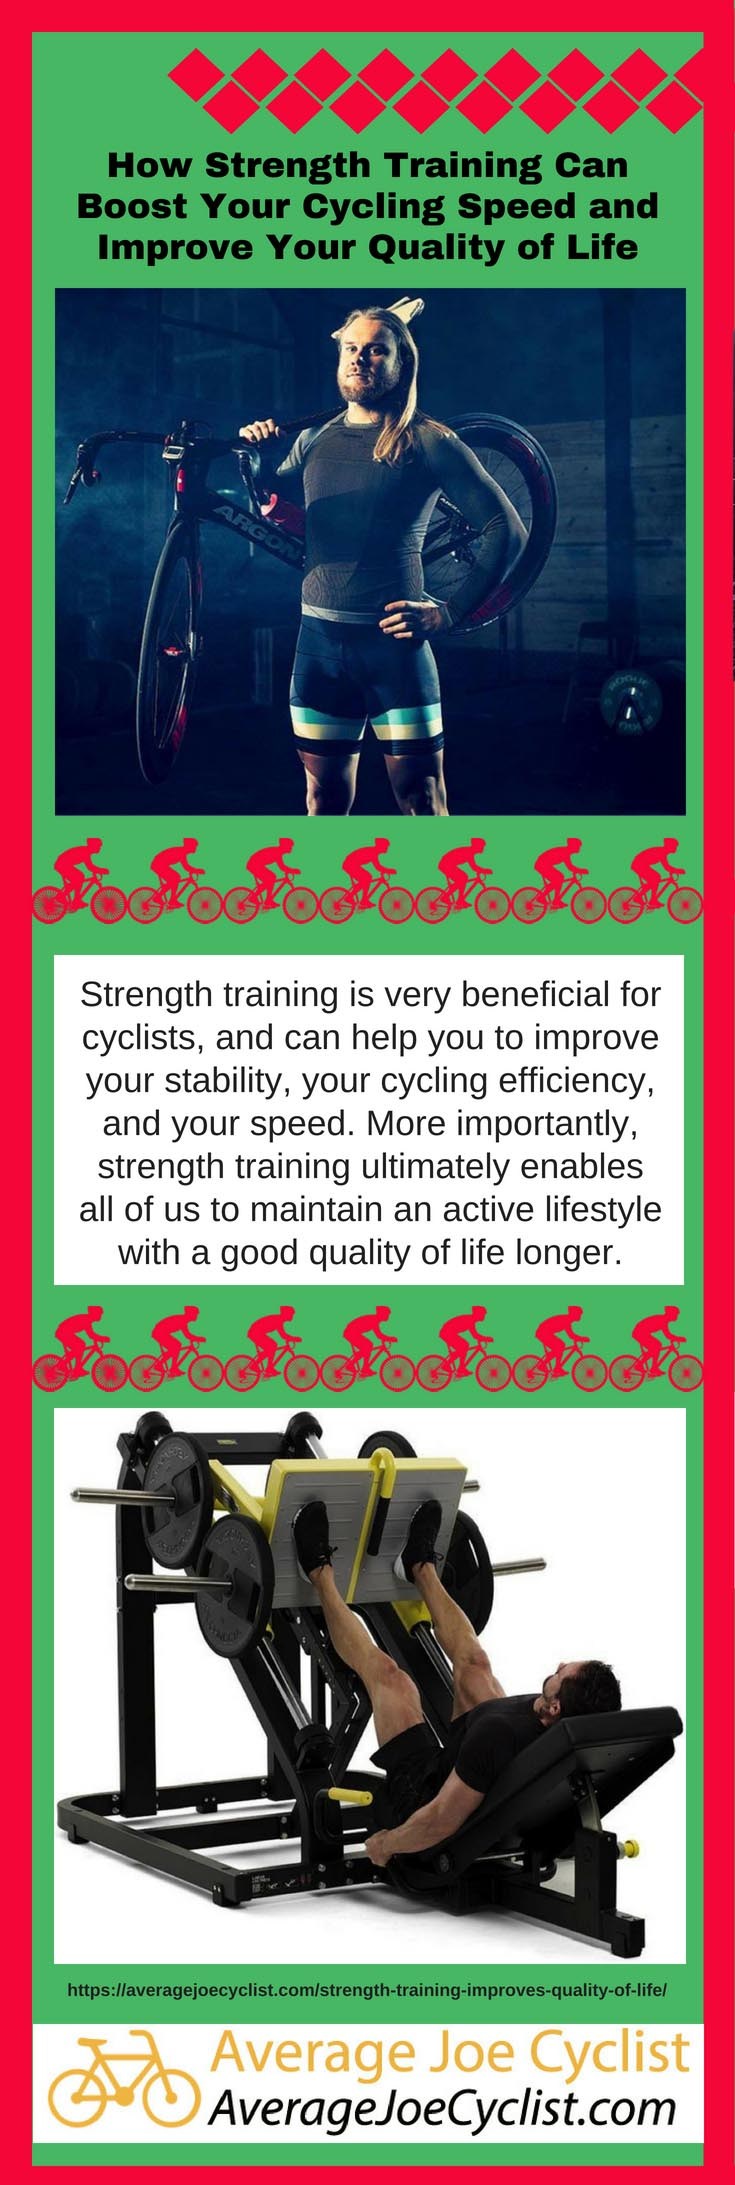 How Strength Training Can Boost Your Cycling Speed and Quality of Life